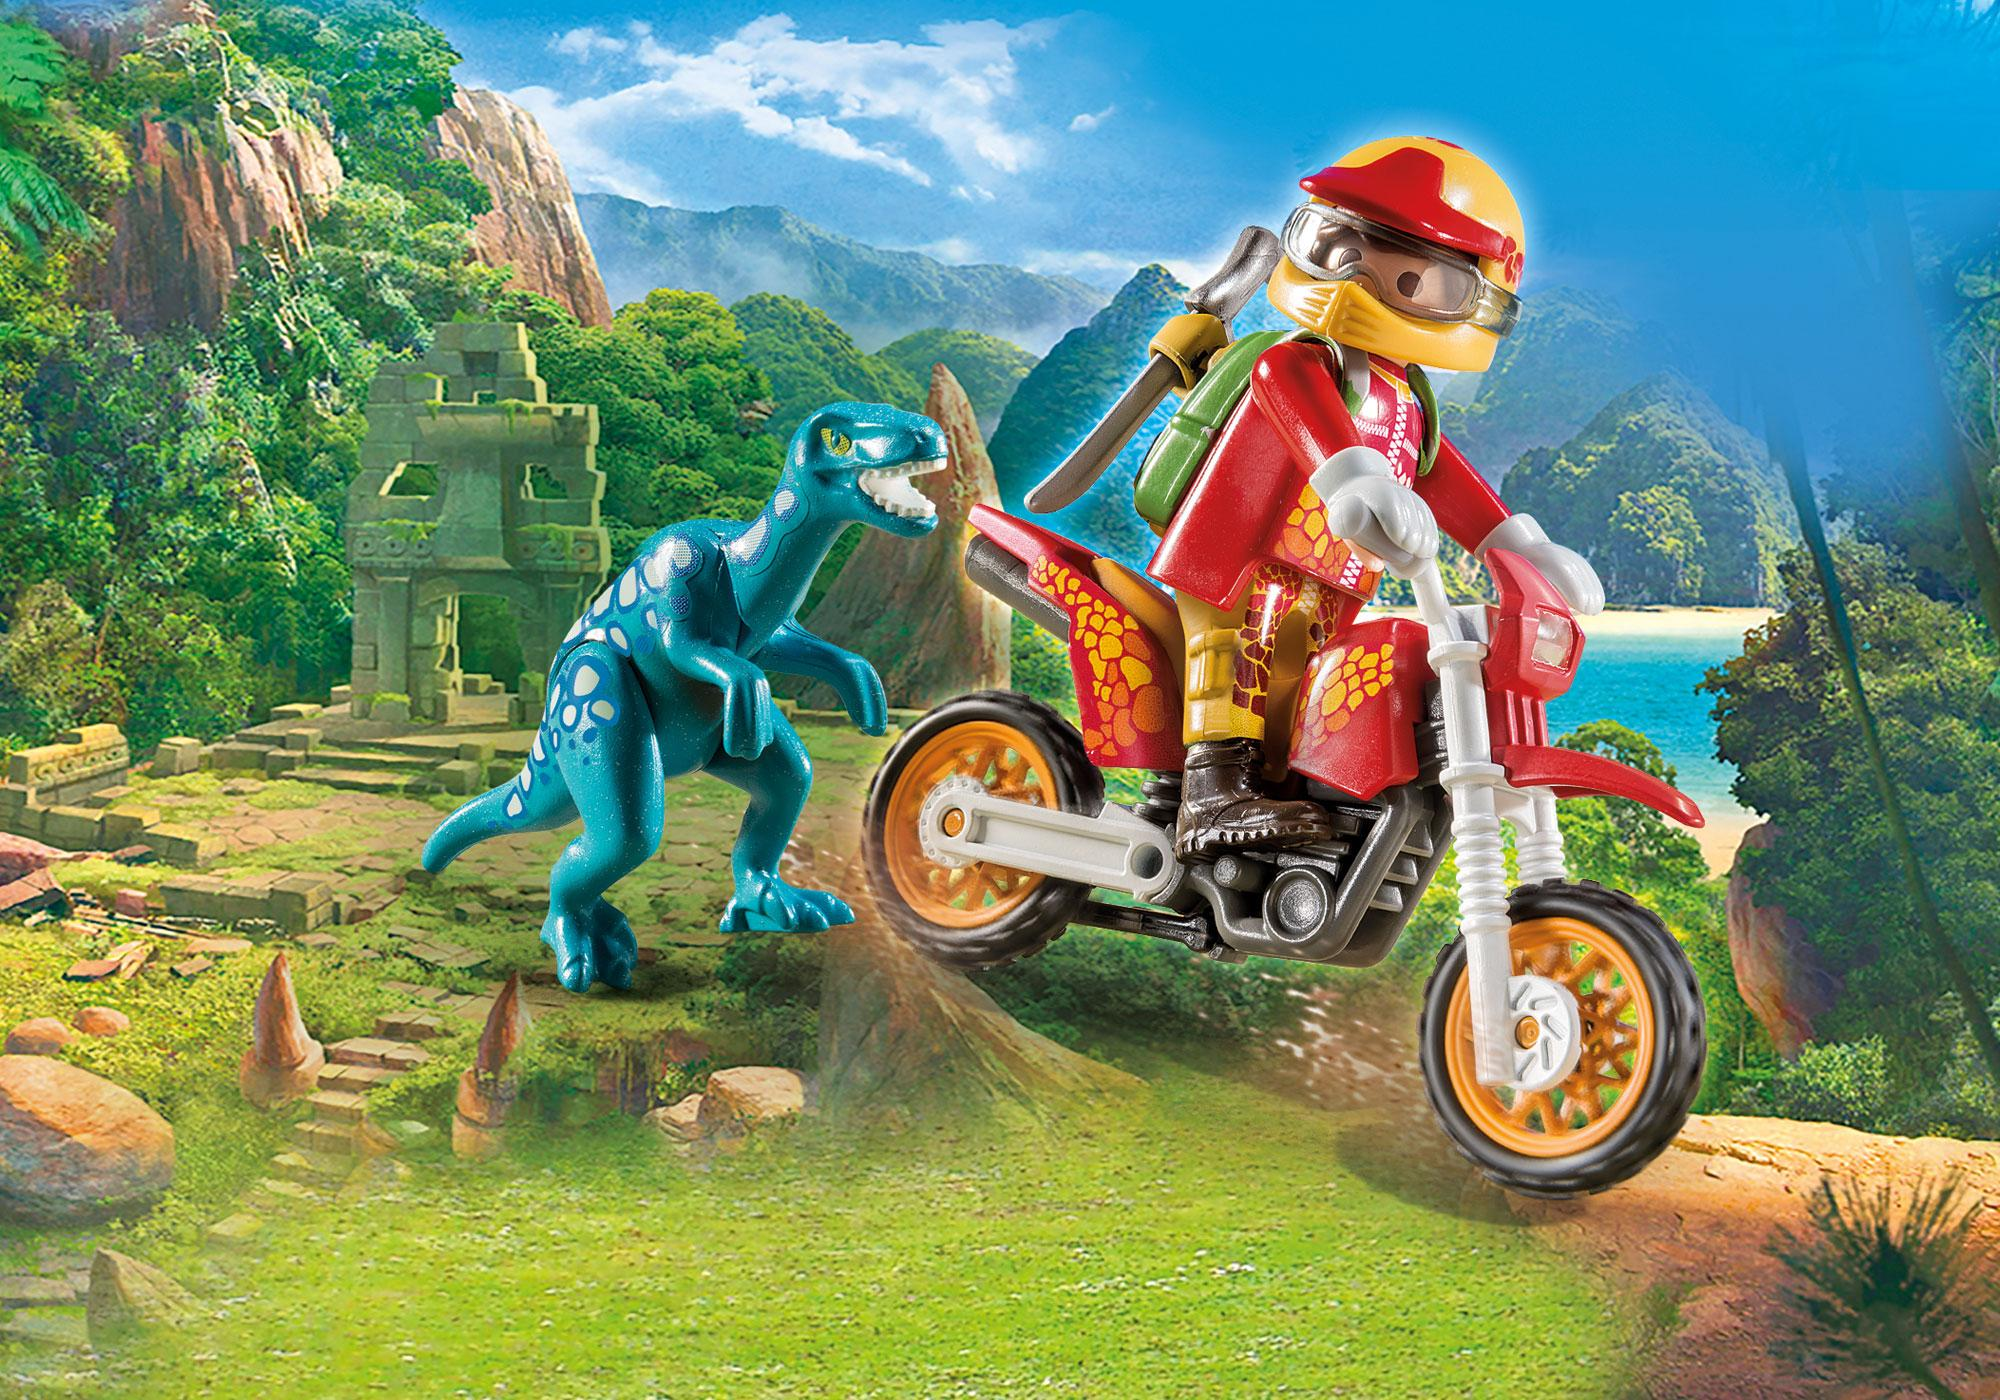 http://media.playmobil.com/i/playmobil/9431_product_detail/Motocross-Bike mit Raptor